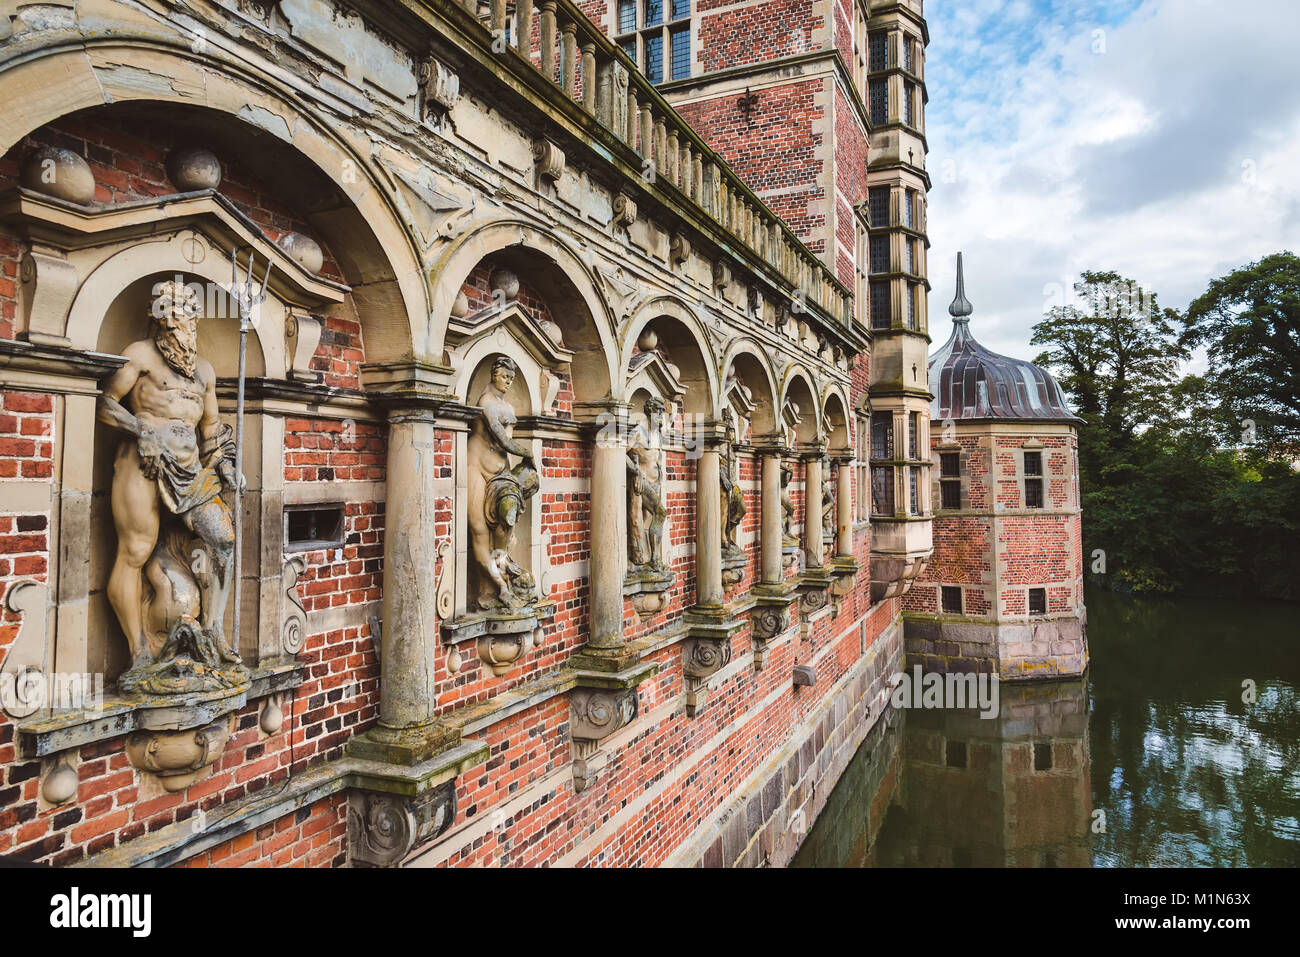 Antique sculptures near entrance to Frederiksborg castle in Cope - Stock Image